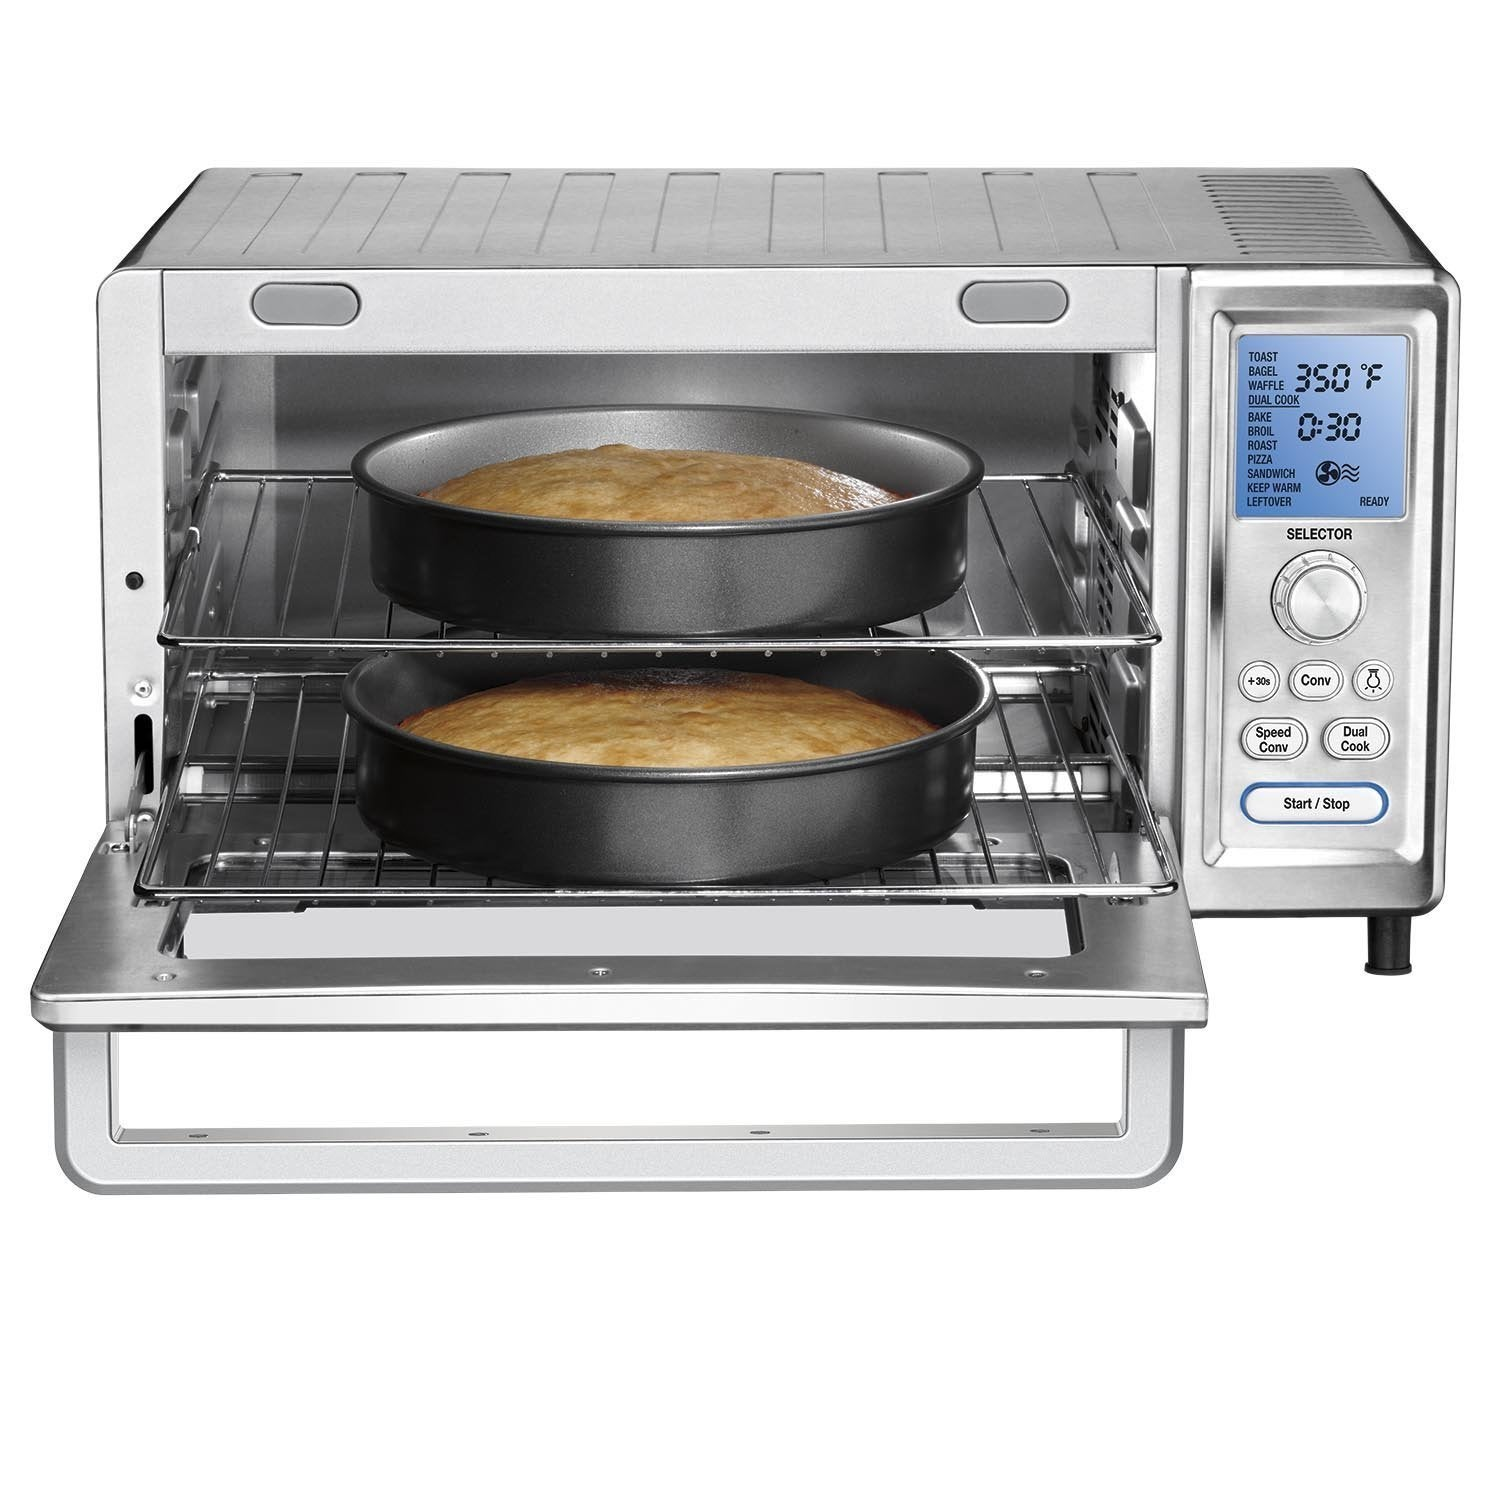 chefs cuisinart en tob main stores bay wcs convection hei wid oven toaster thebay webapp s hudson countertop servlet fit pdplarge broiler